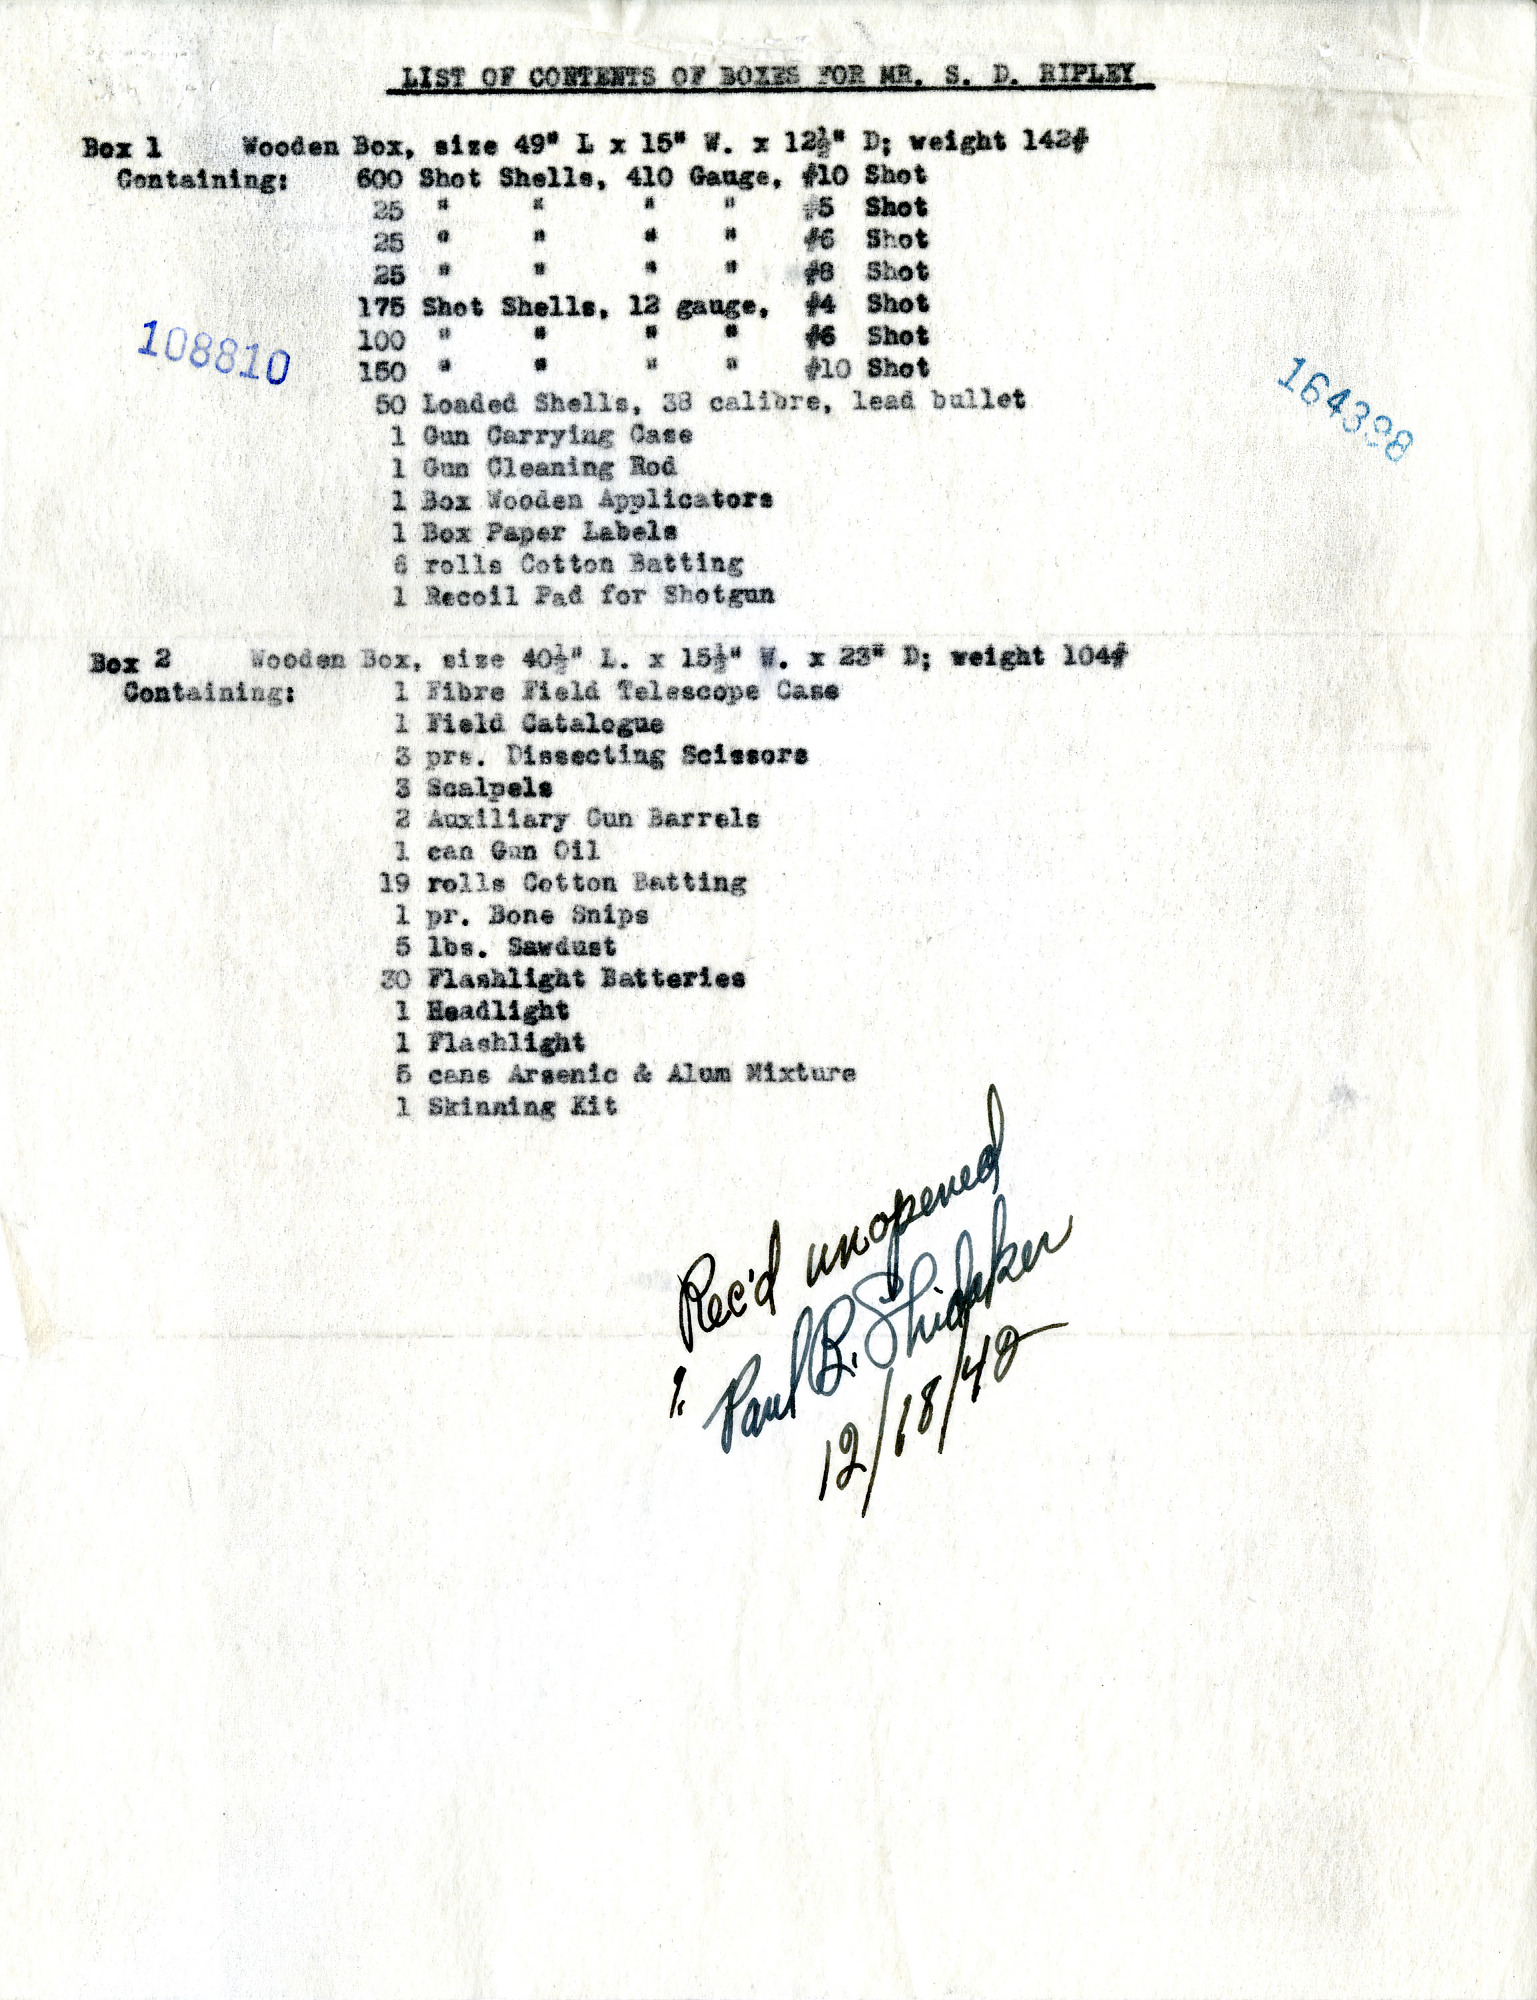 Contents List for Shipment to Ceylon